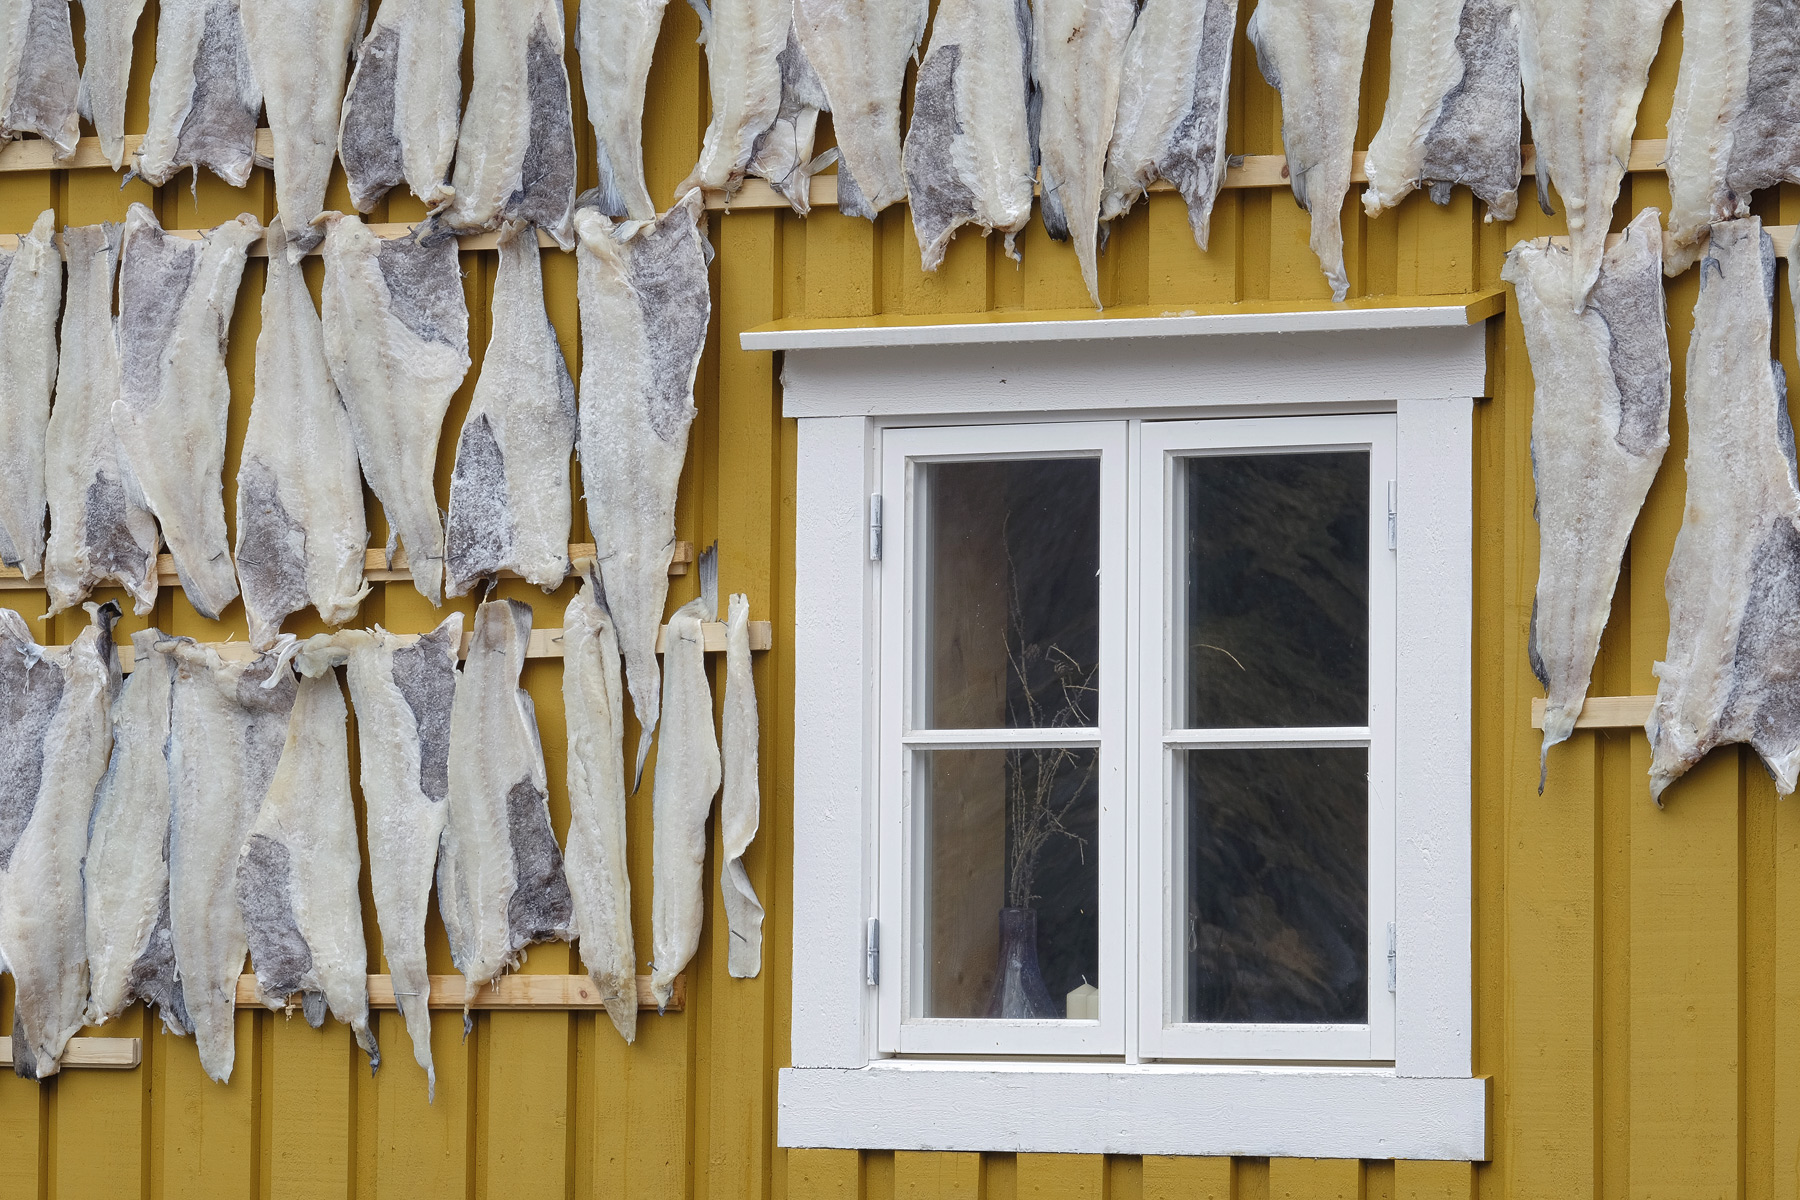 The Norwegians have so many waays to display their fish and these cod freshly salted and opened up butterfly fashion to dry were...